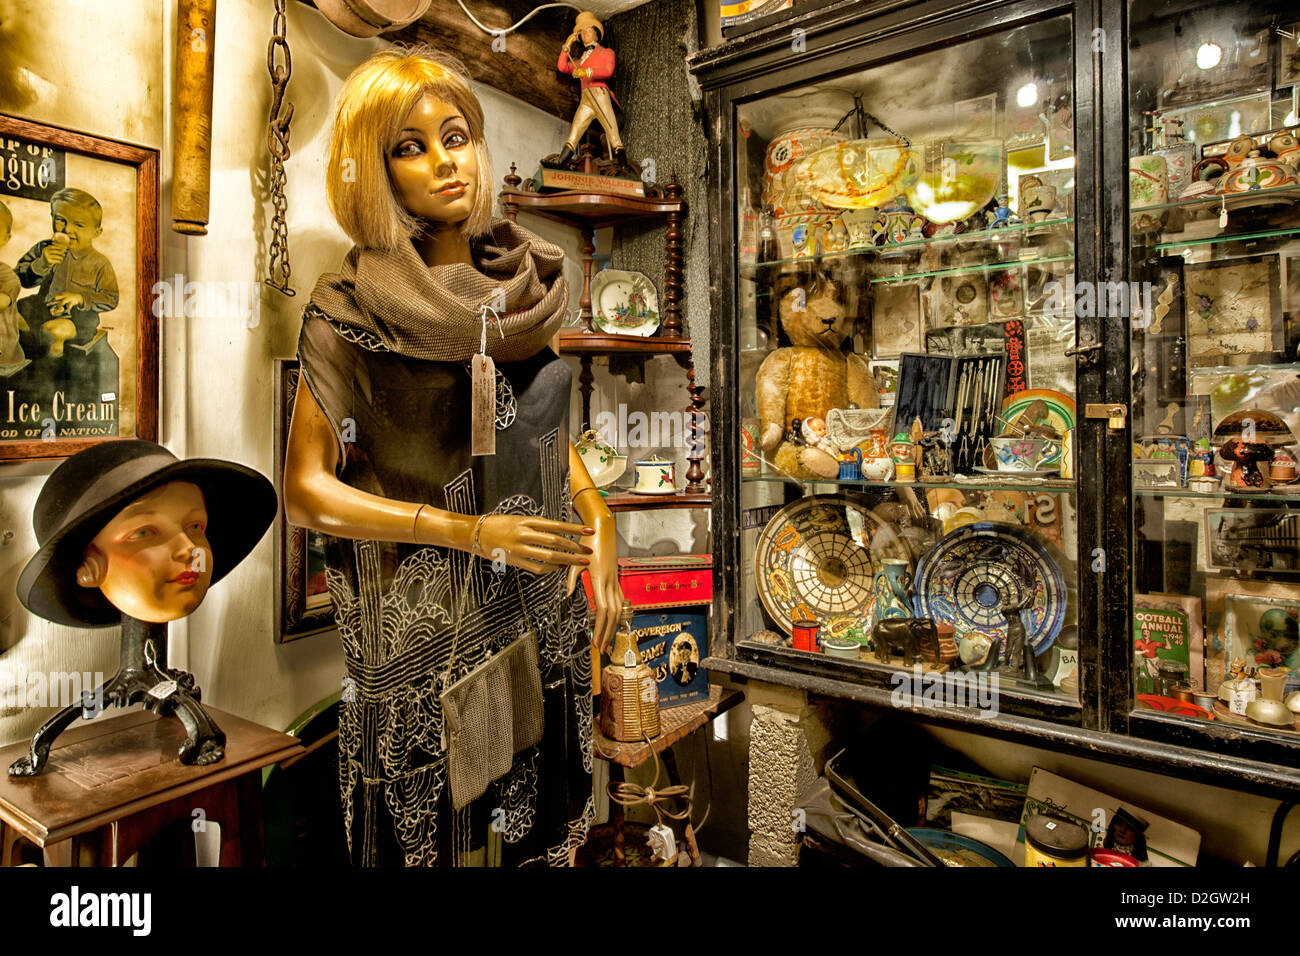 Bric-a-brac, antiques, collectibles on display for sale in shop, West Wales, Wales, UK. - Stock Image